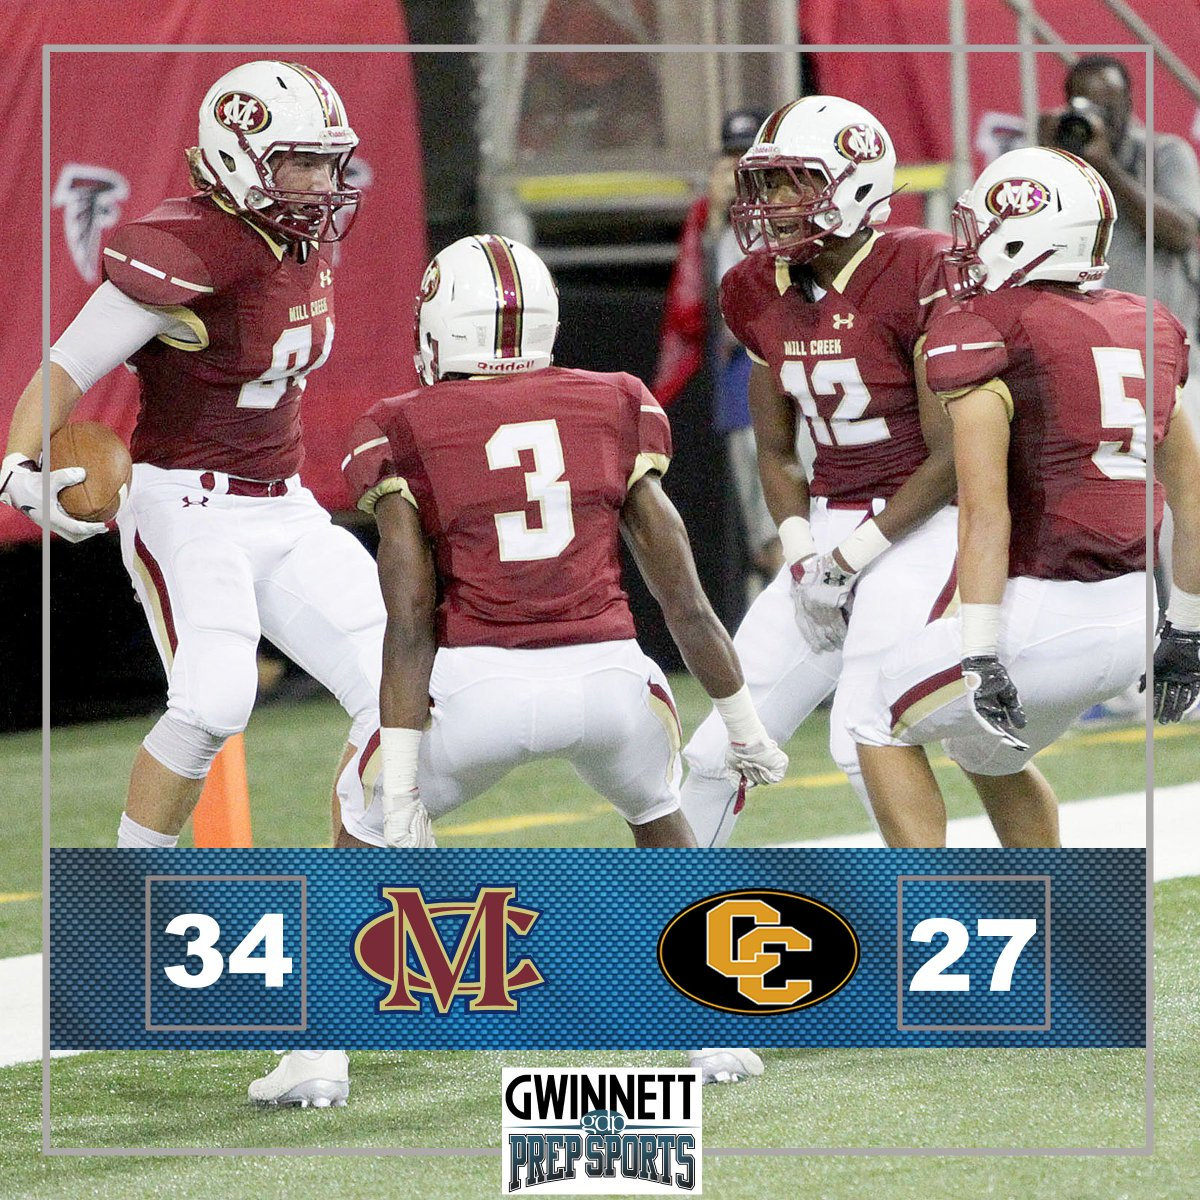 Mill Creek snaps Colquitt County's 30-game win streak in the #CorkyKell. More photos at https://t.co/BIMrJdN6cQ. https://t.co/jgVHZOUknp